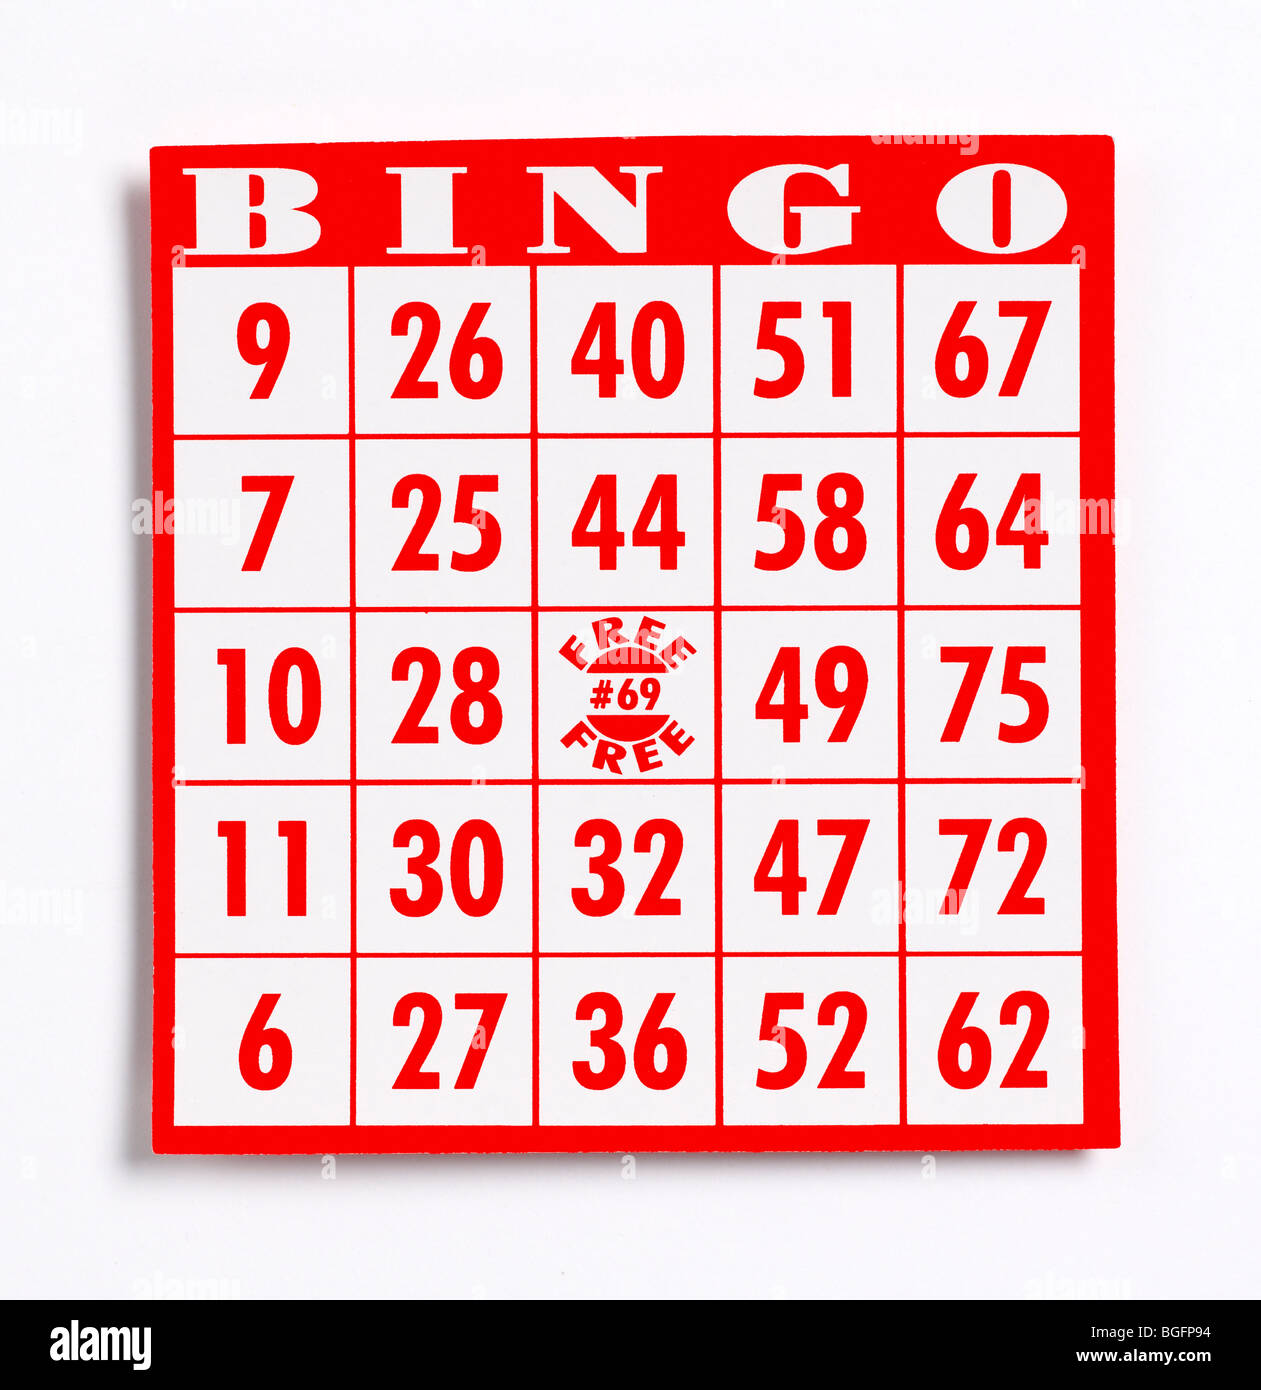 Bingo Game Card - Stock Image